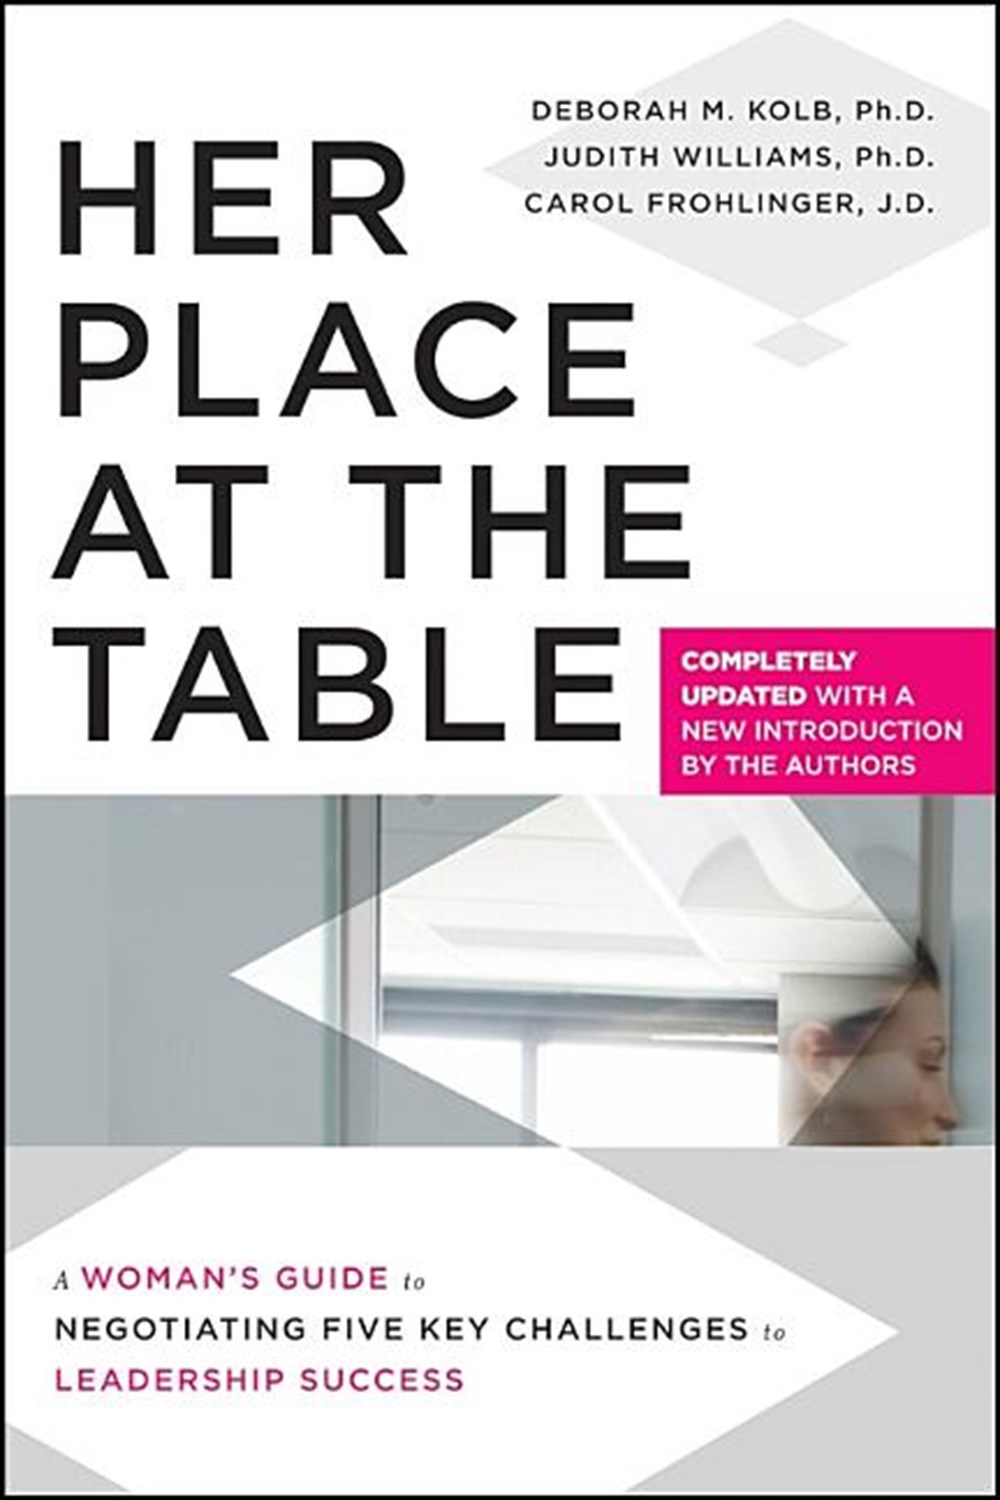 Her Place at the Table A Woman's Guide to Negotiating Five Key Challenges to Leadership Success (Upd